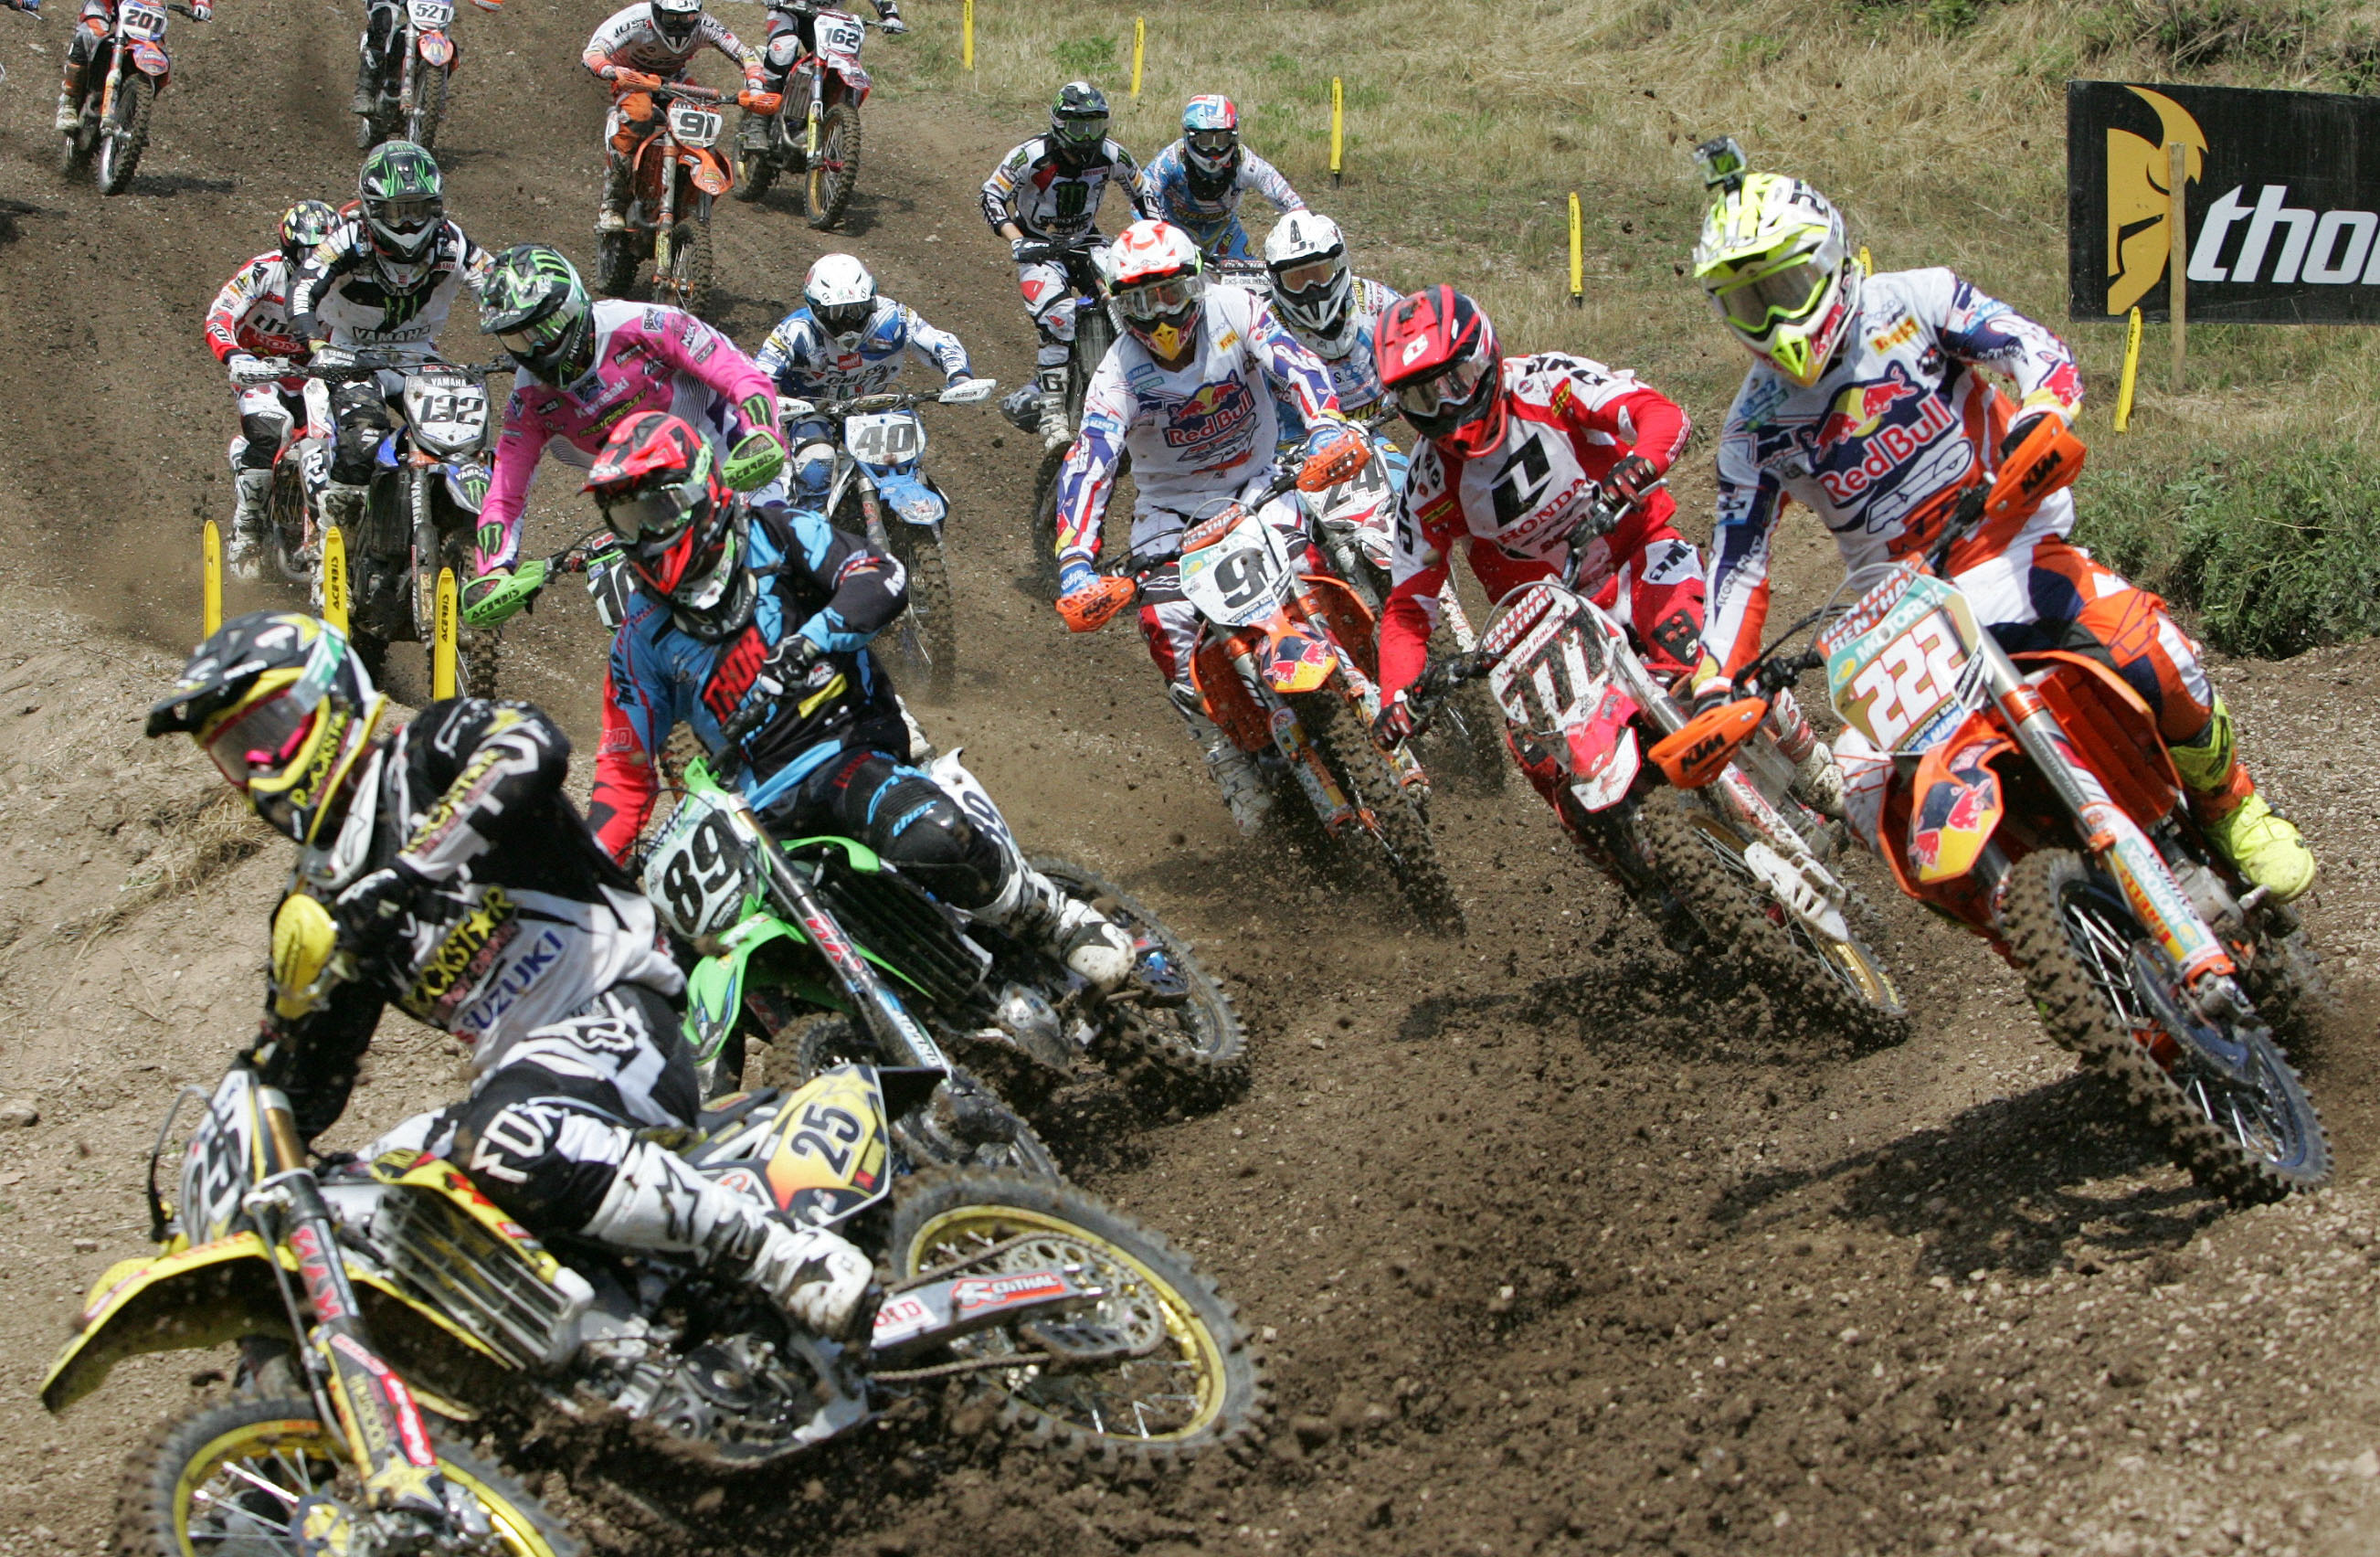 MOTOCROSS beIN SPORTS